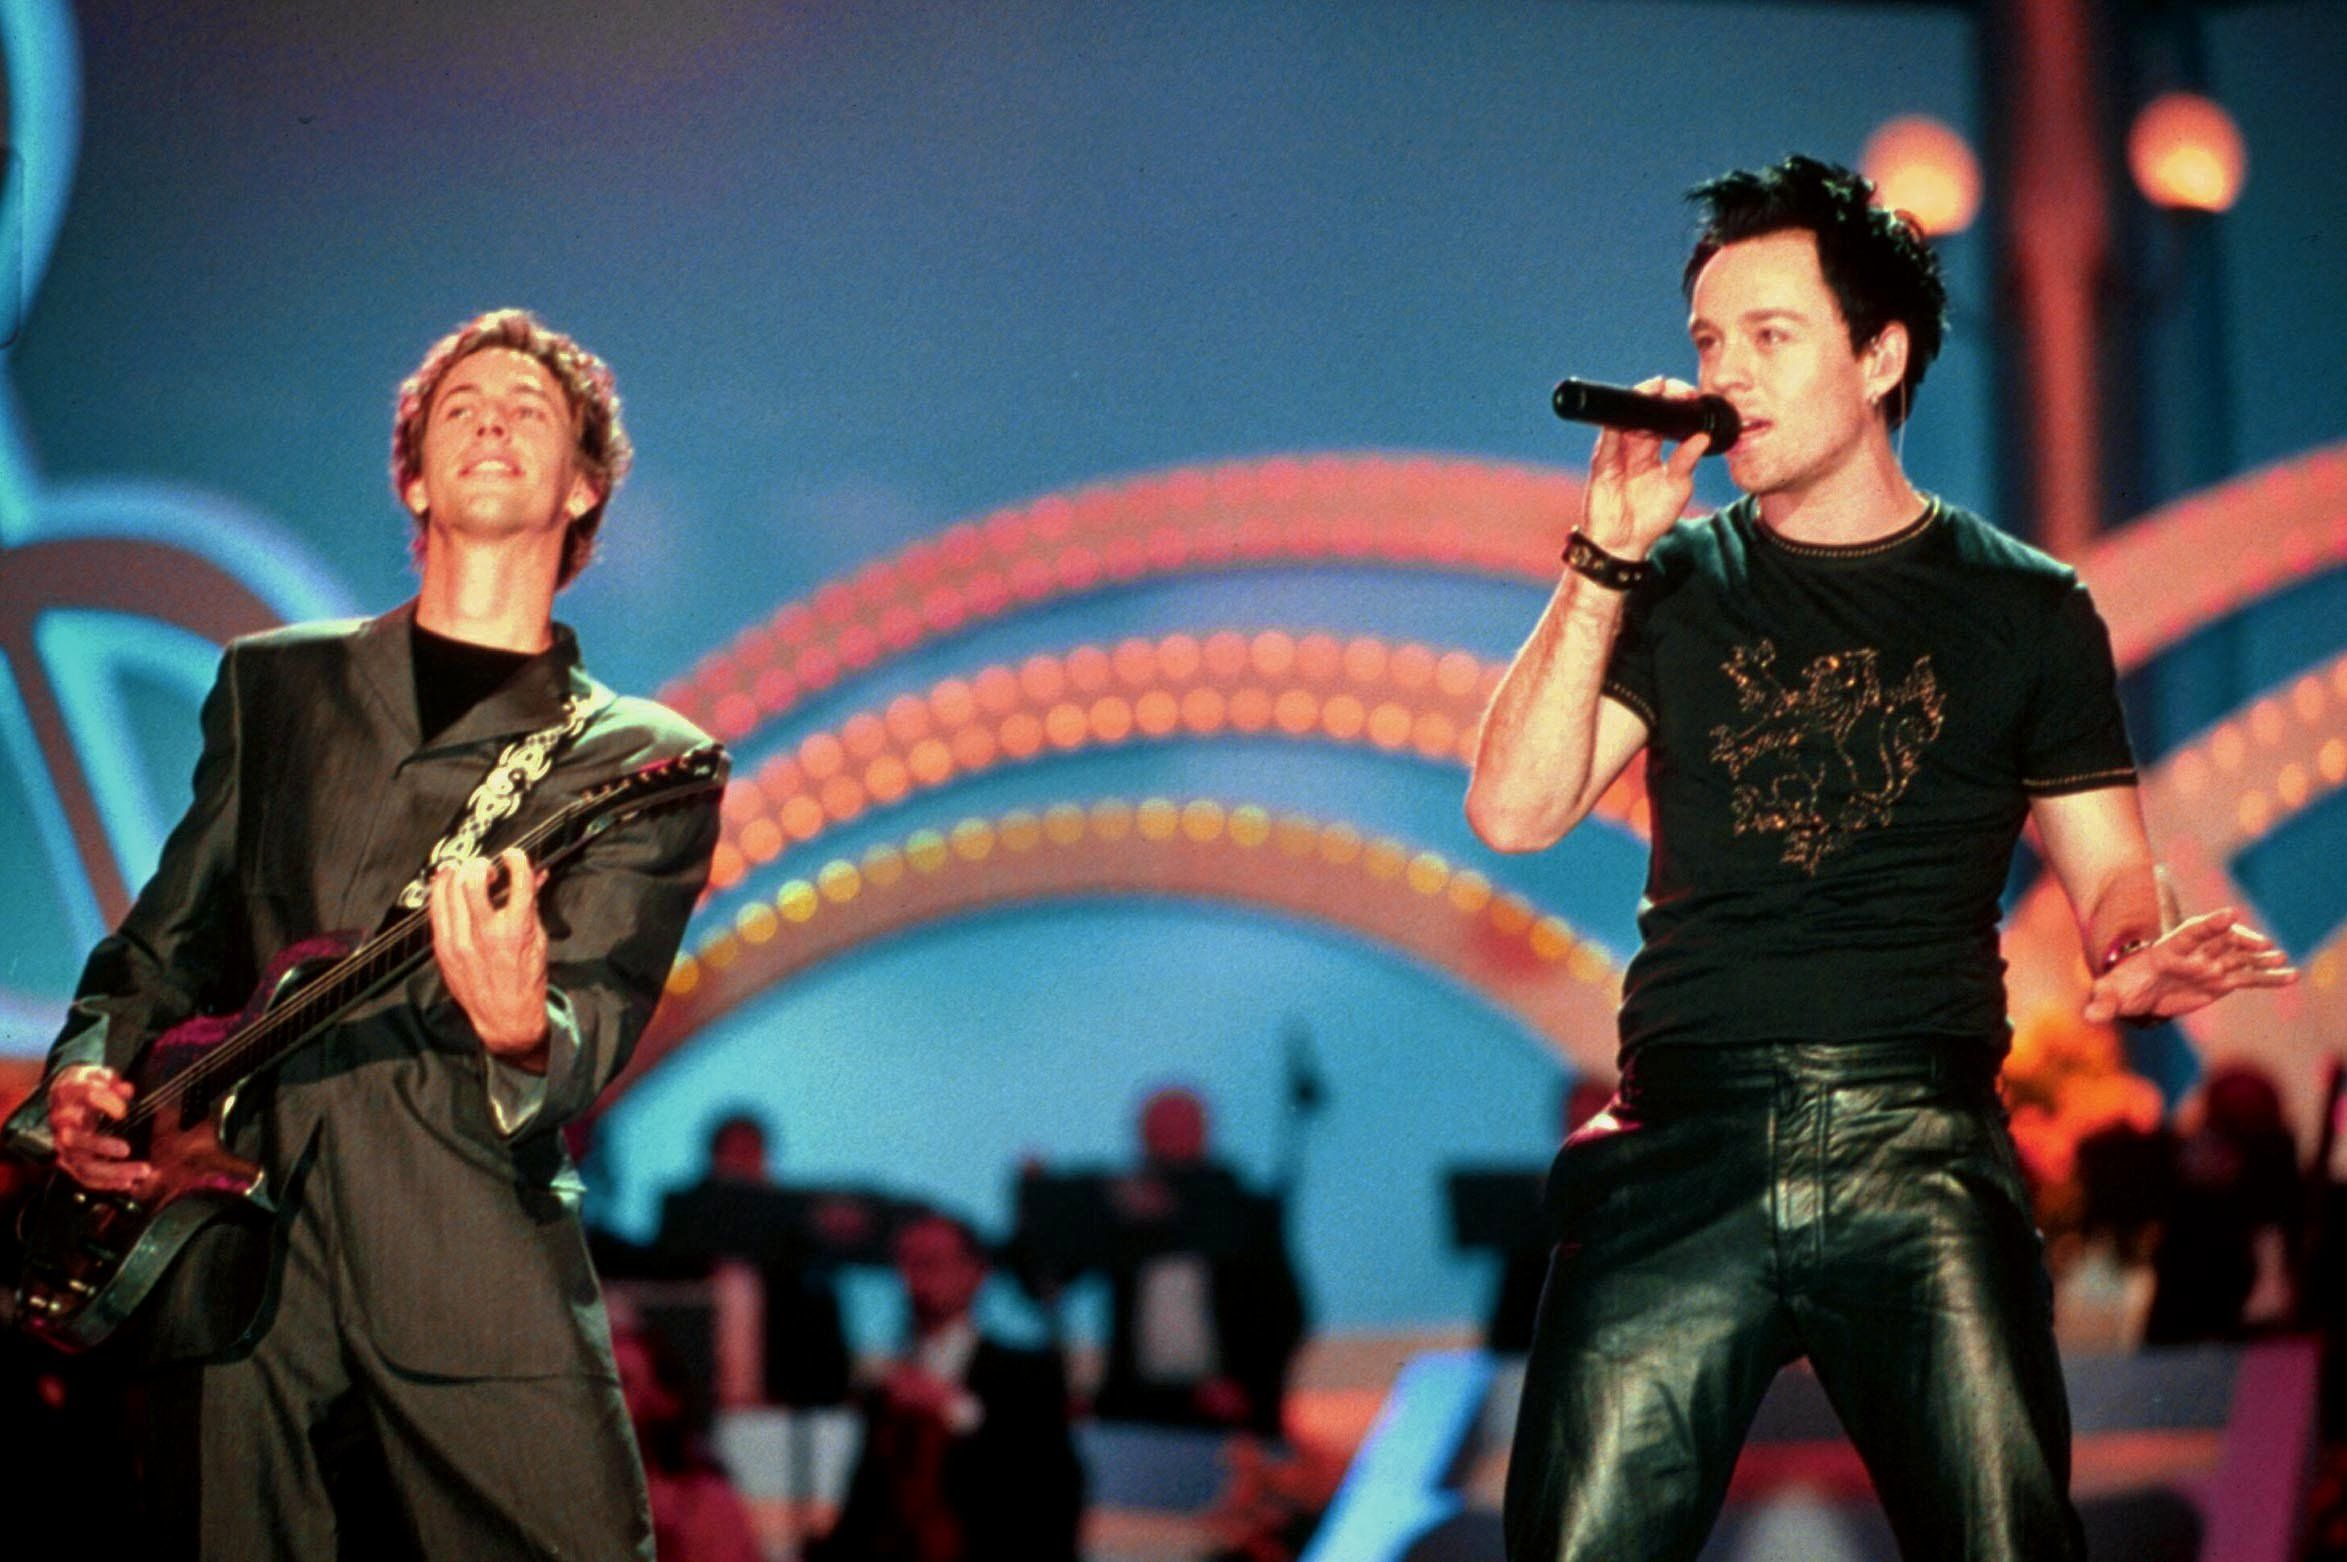 38 of the Best Pop Groups of the 1990s and Early 2000s